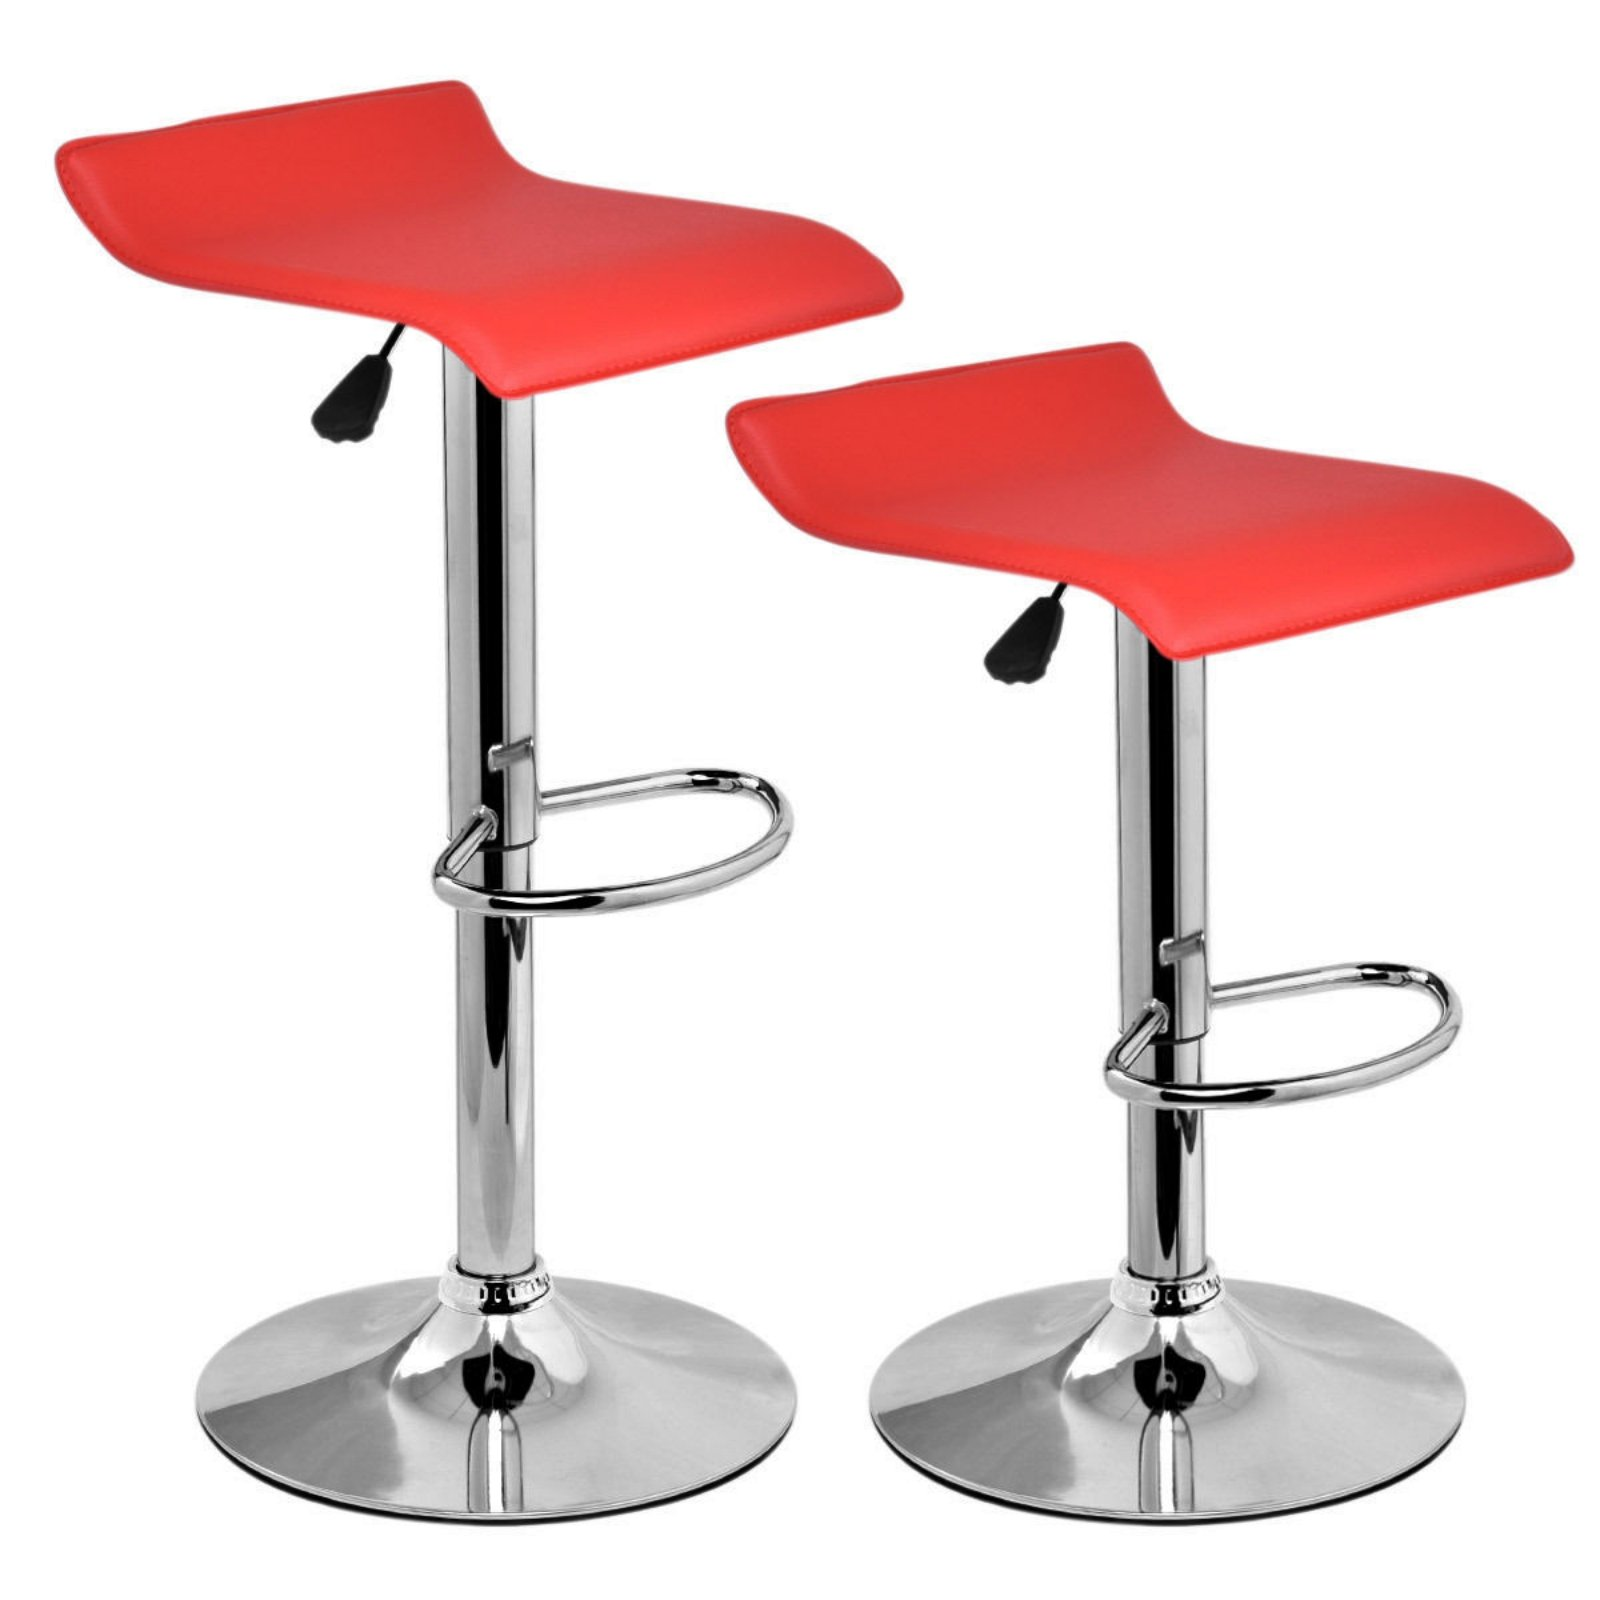 Set Of 2 Swivel Bar Stools Adjustable Waterproof Anti-aging PU Leather Backless Dining Bar Chair Square Red #712